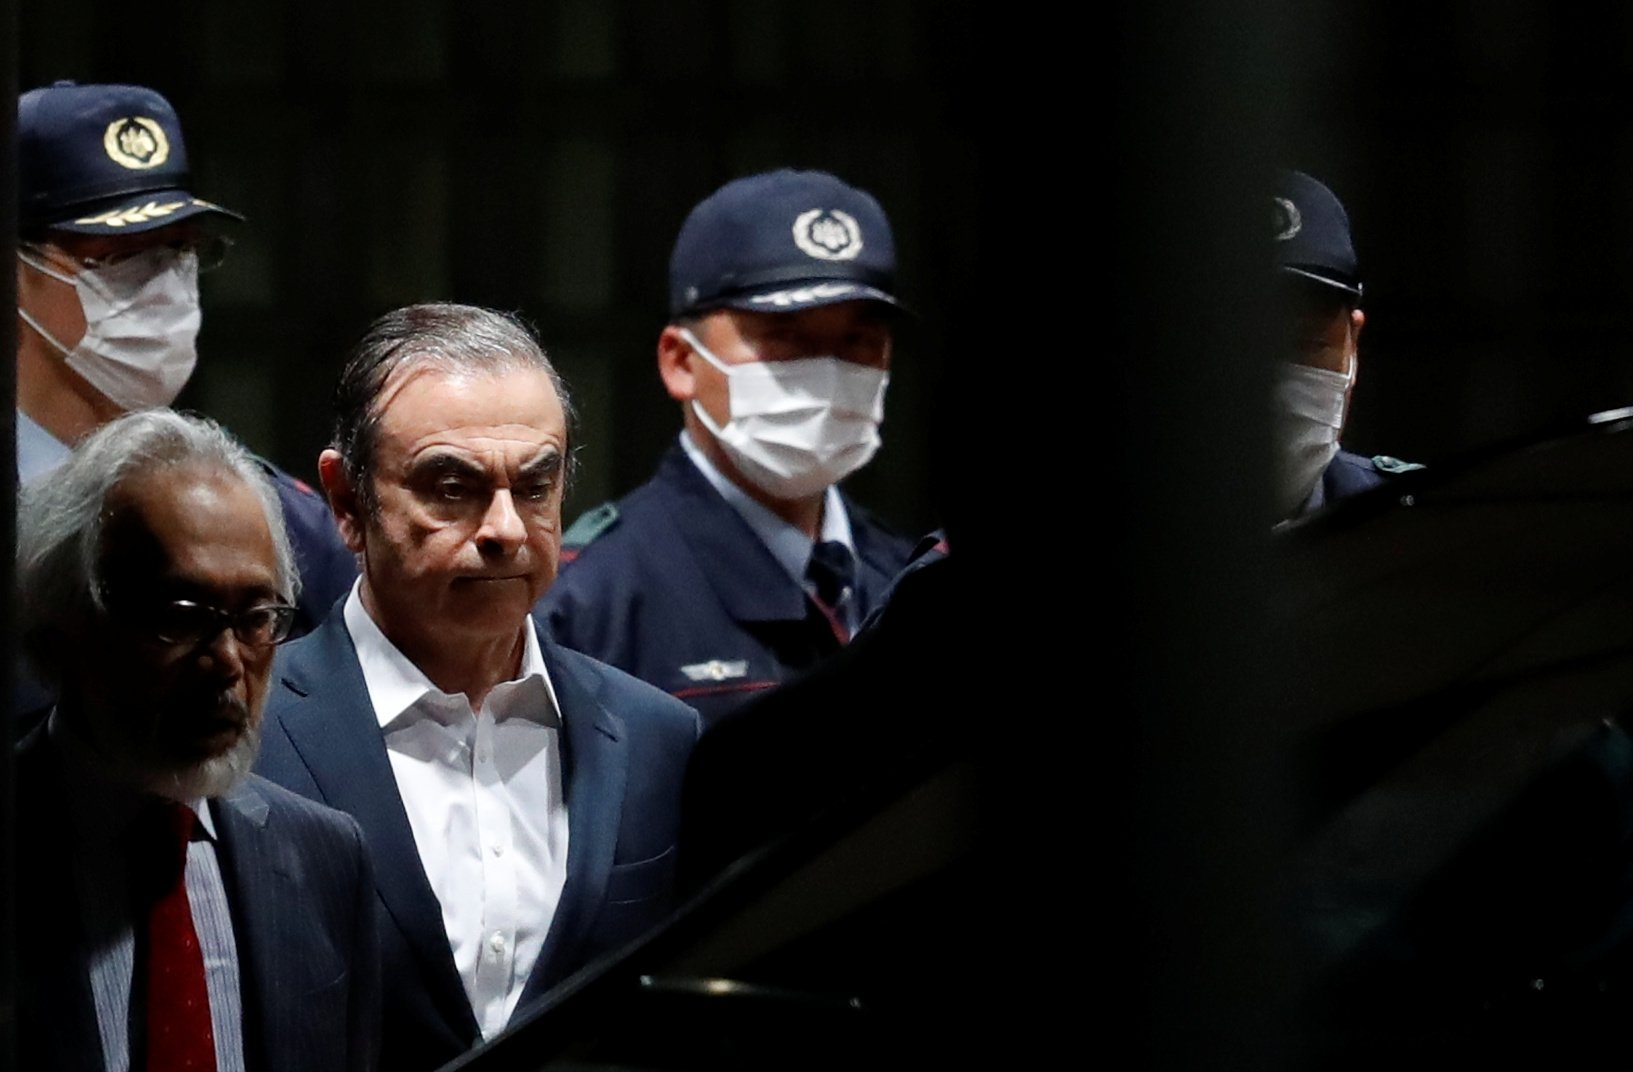 FILE PHOTO: Former Nissan Motor Chariman Carlos Ghosn leaves the Tokyo Detention House in Tokyo, Japan April 25, 2019. REUTERS/Issei Kato